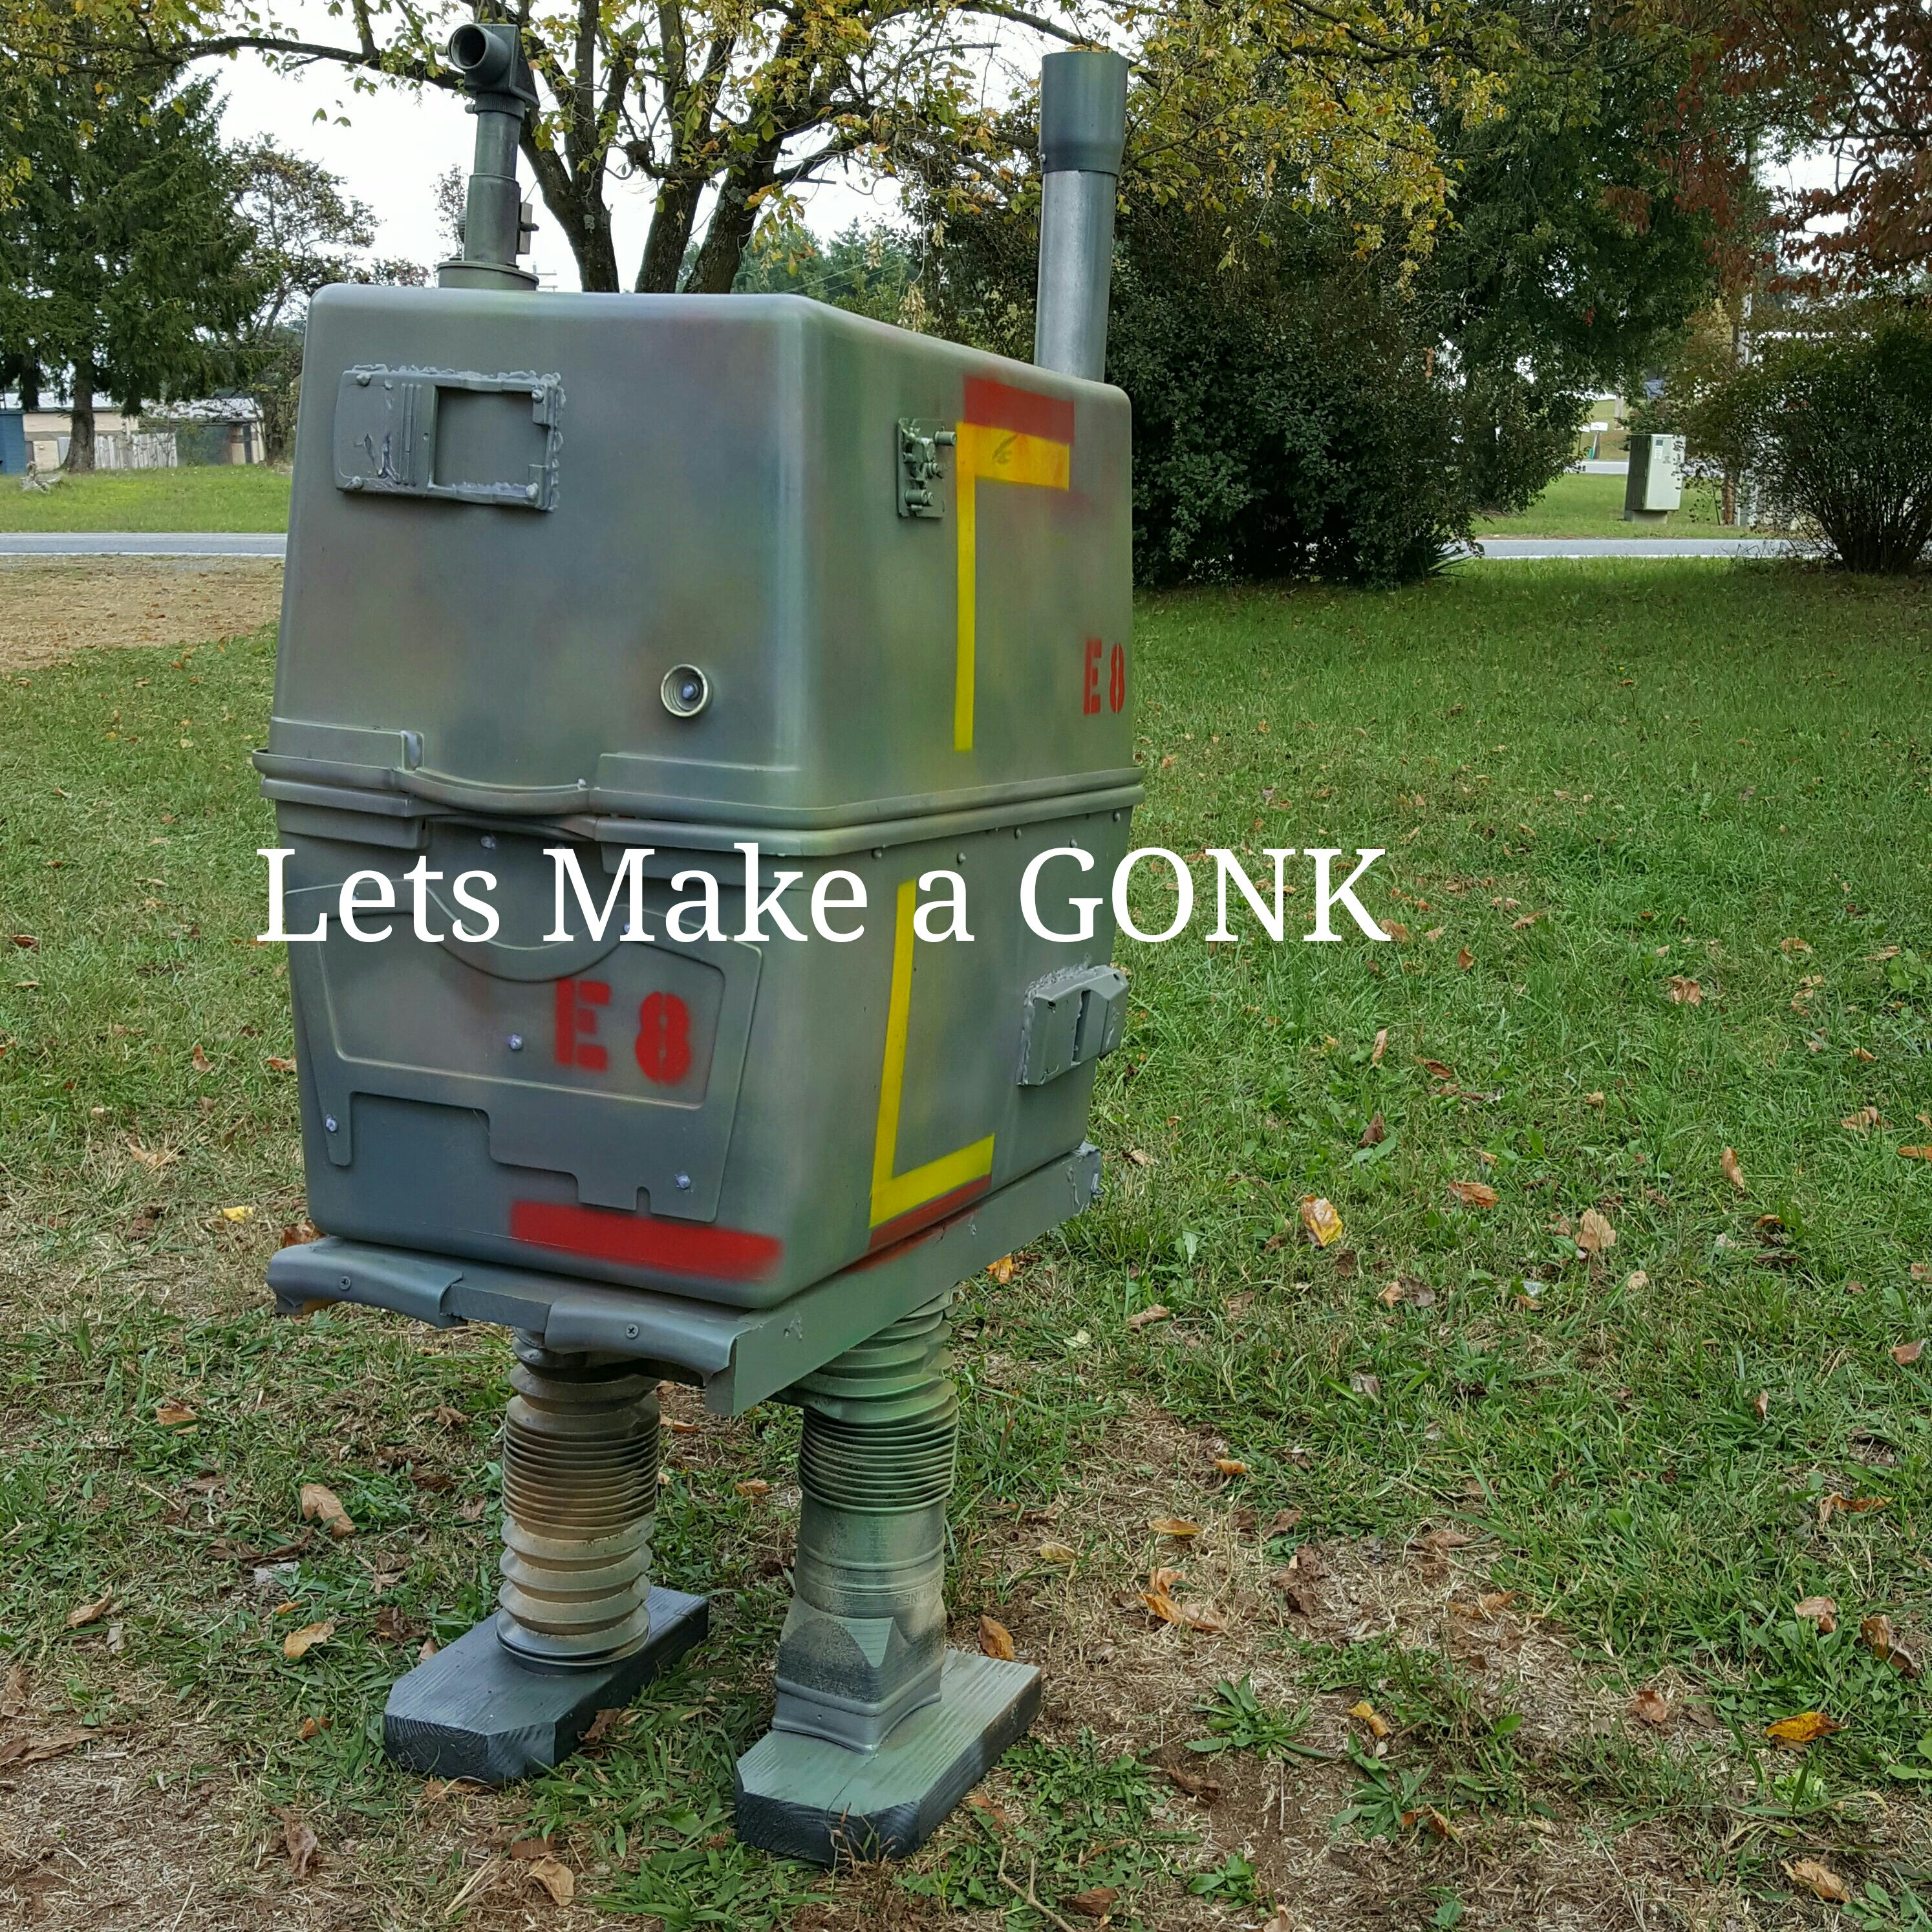 Picture of GONK Droid From Junk